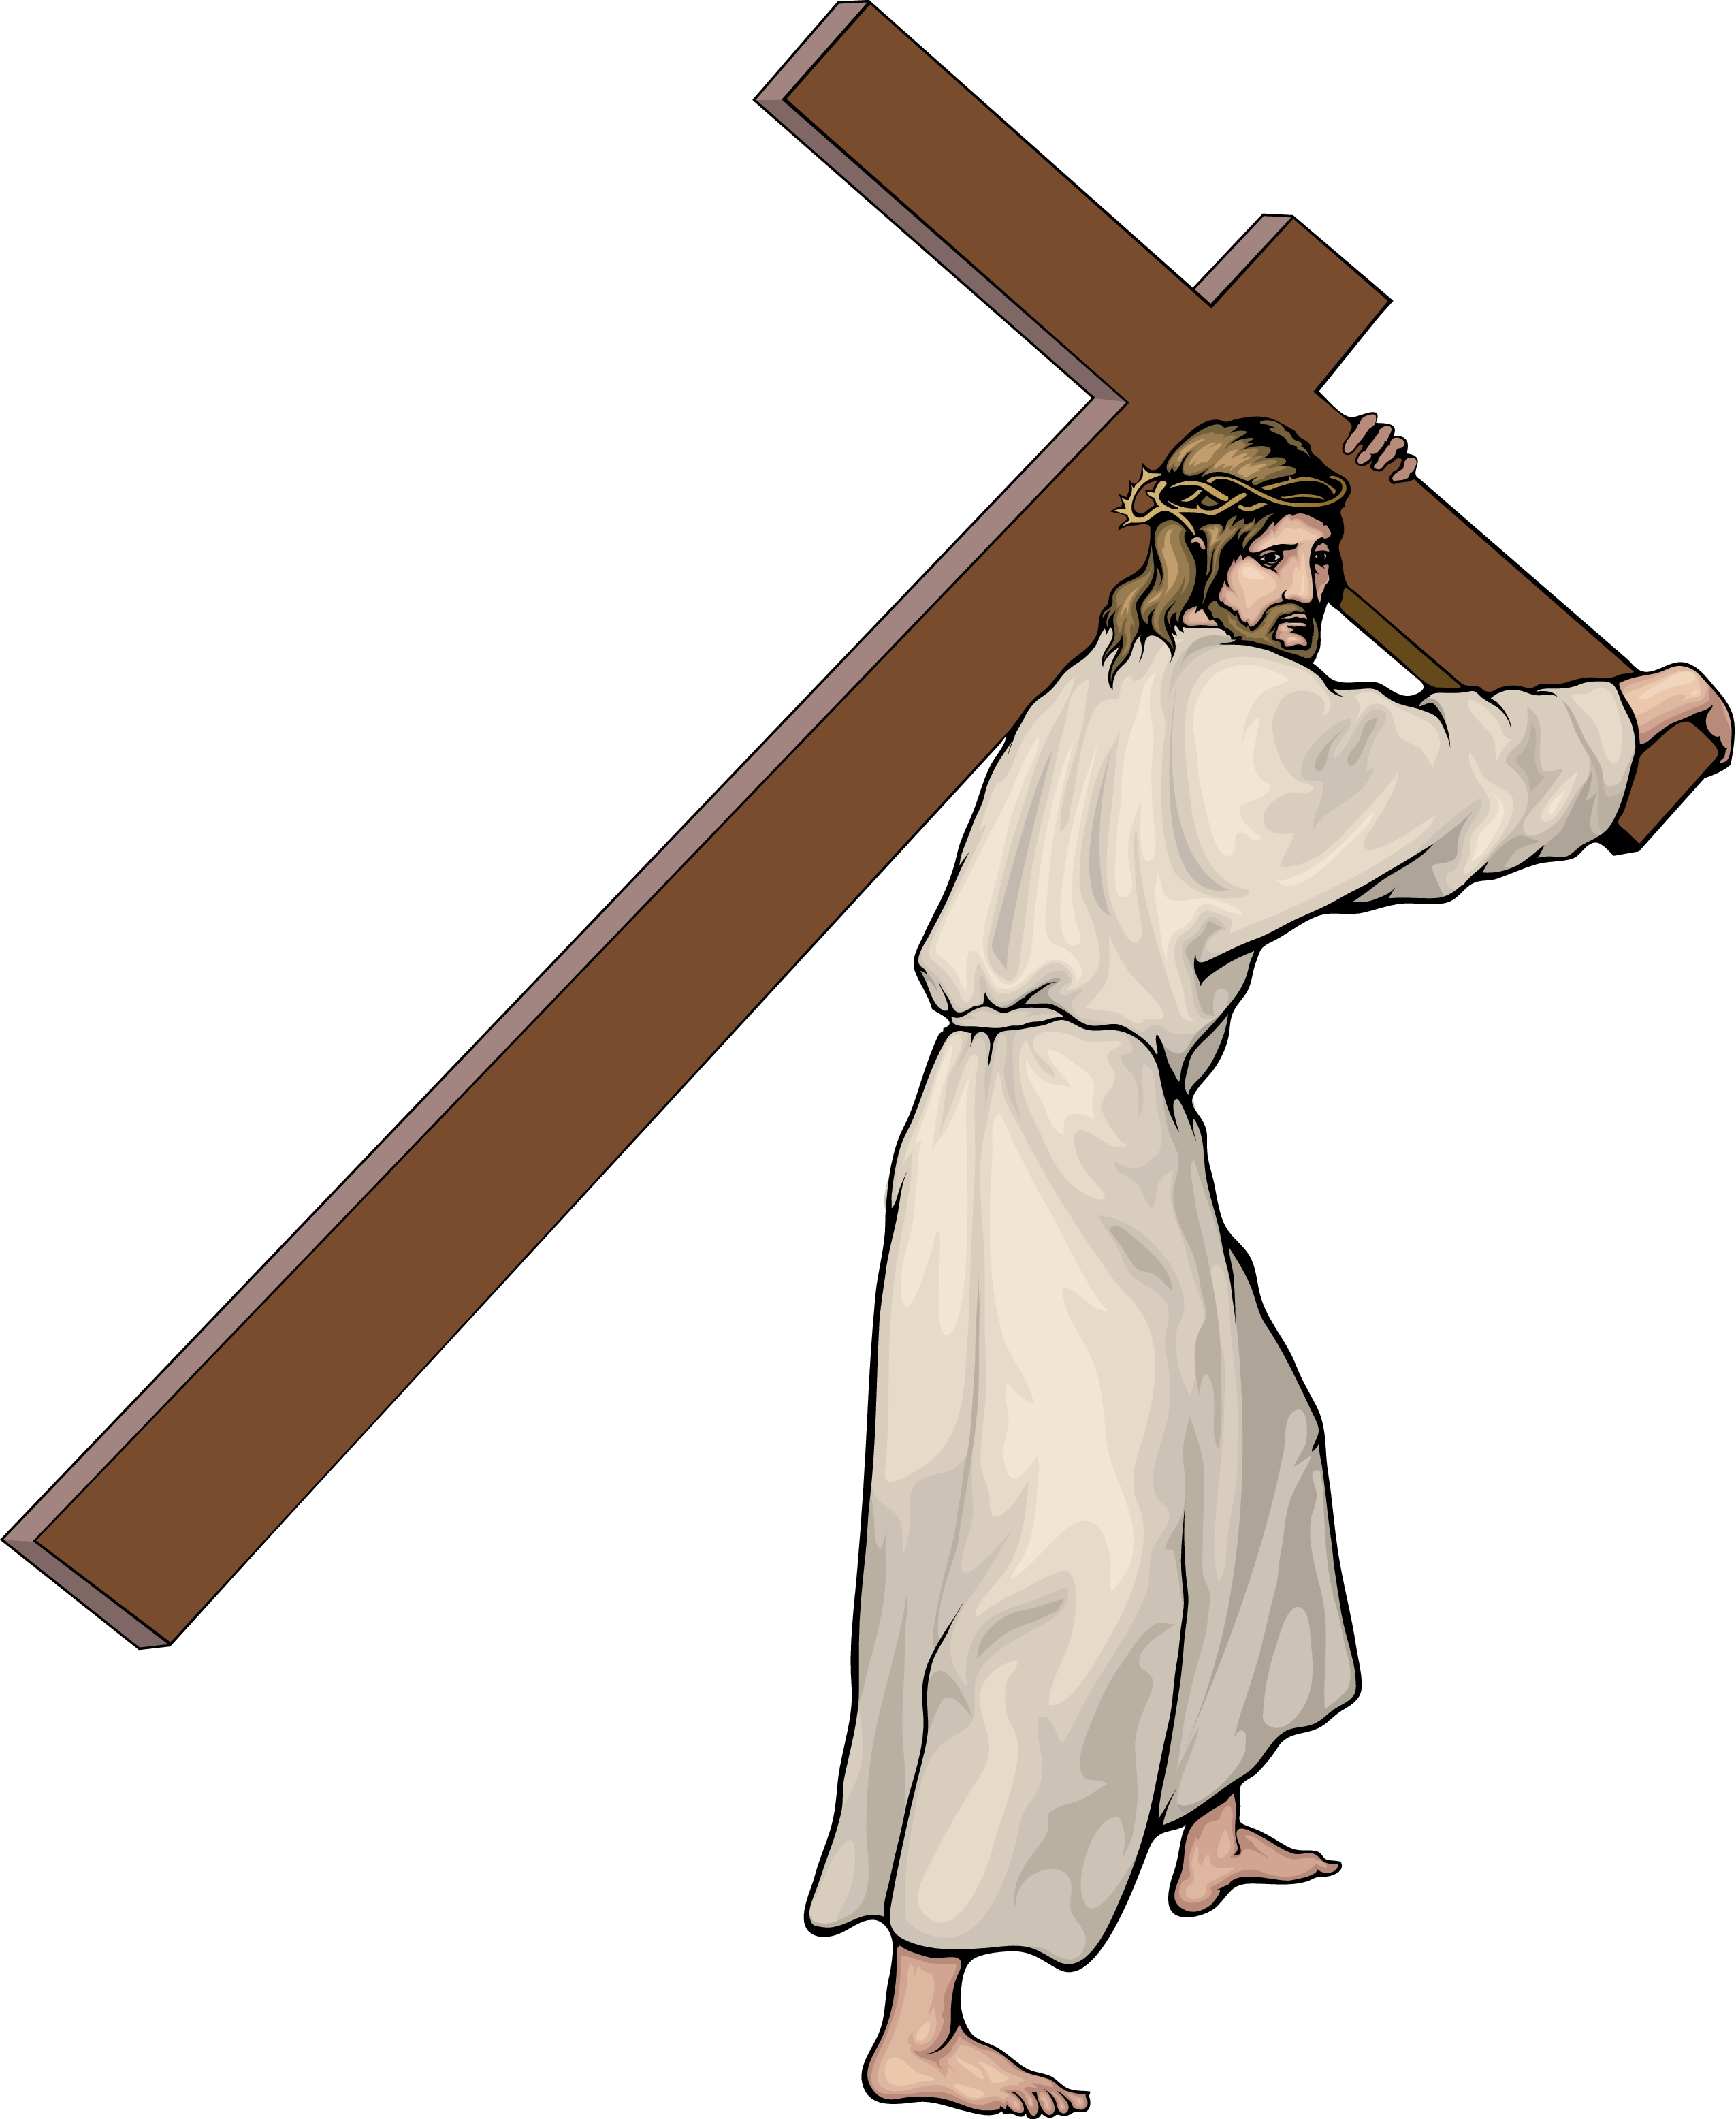 Stations of the cross clipart #14